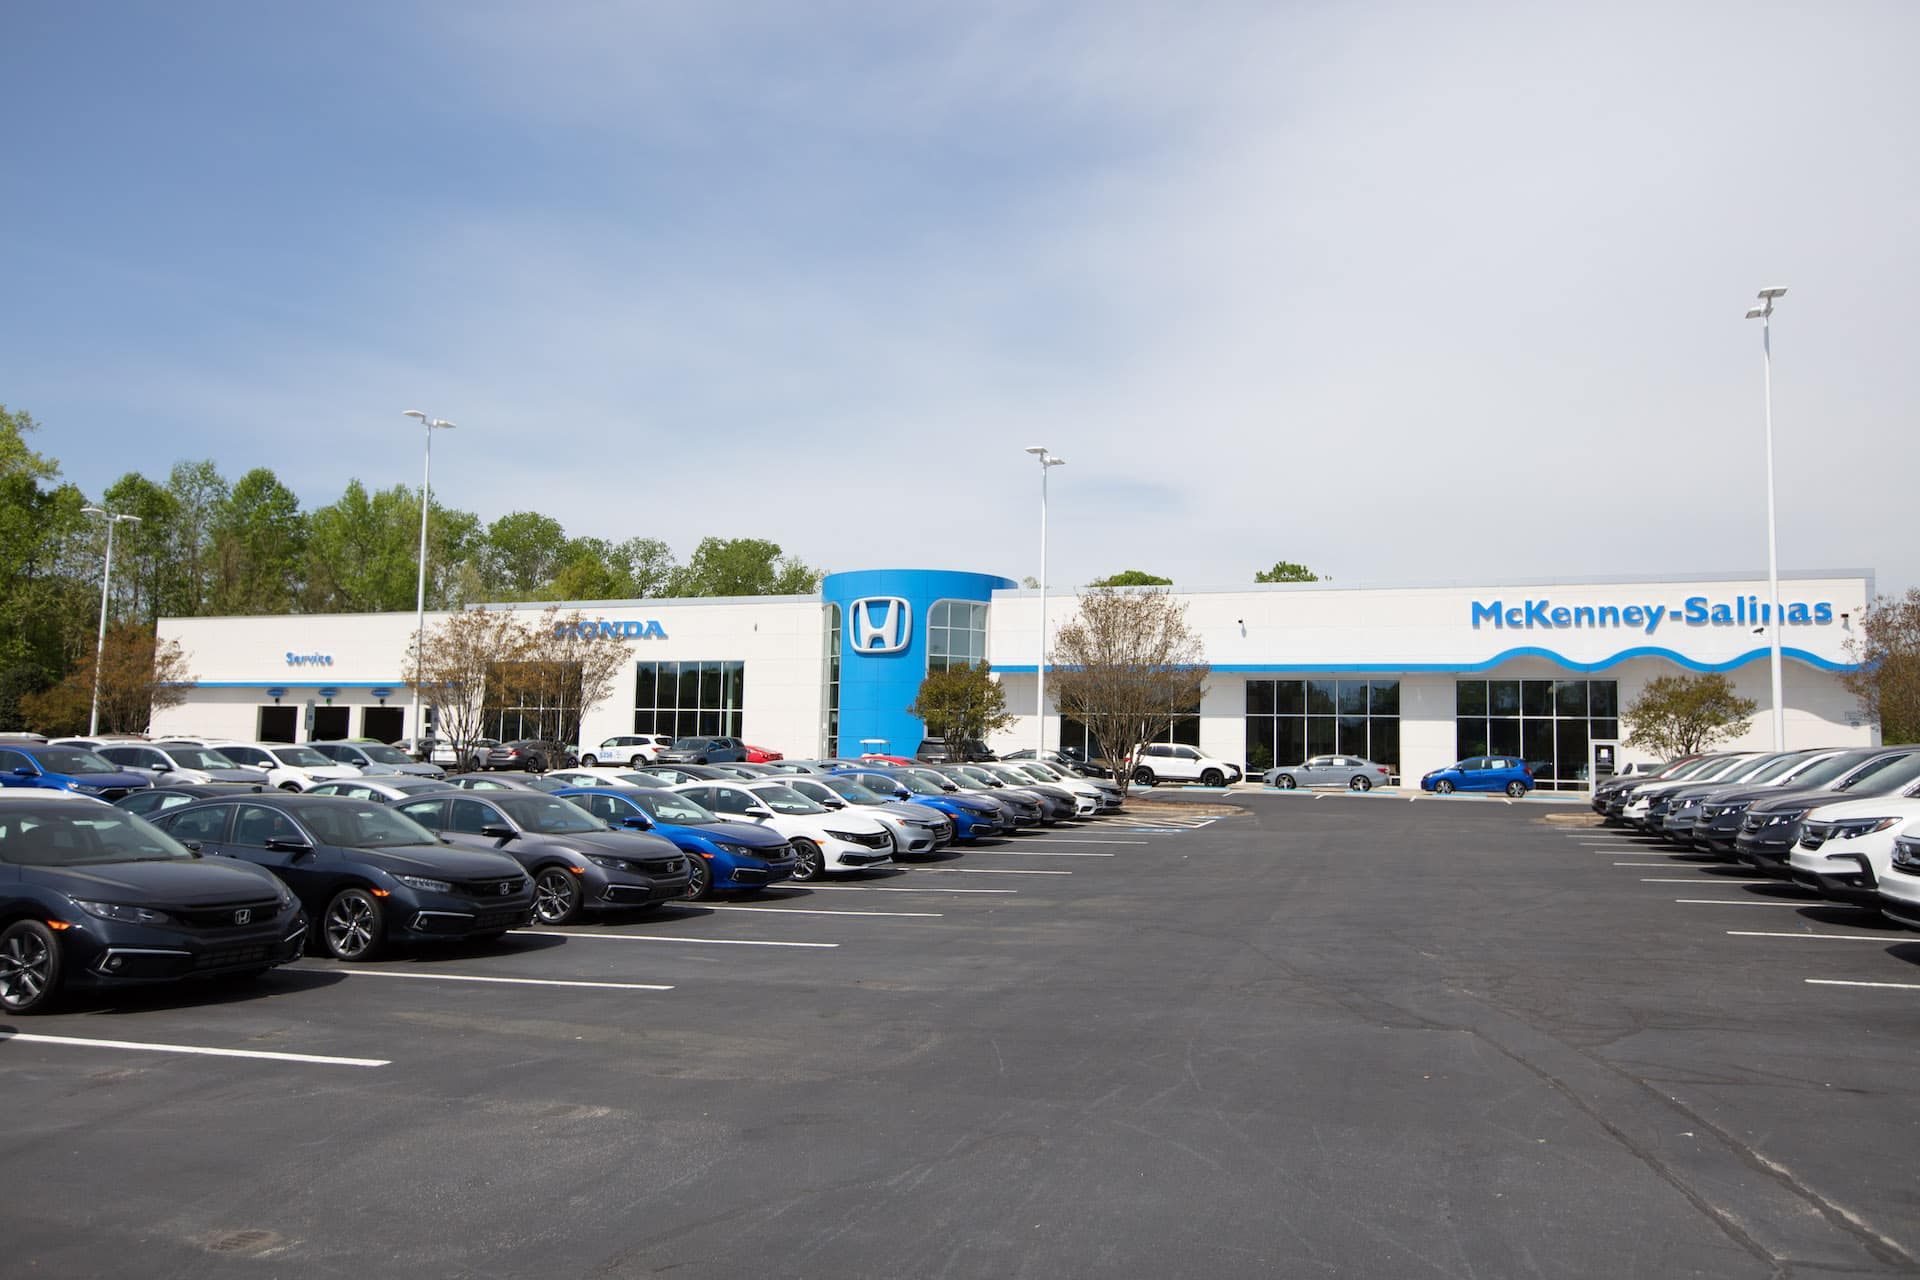 Outside image of dealership and lot